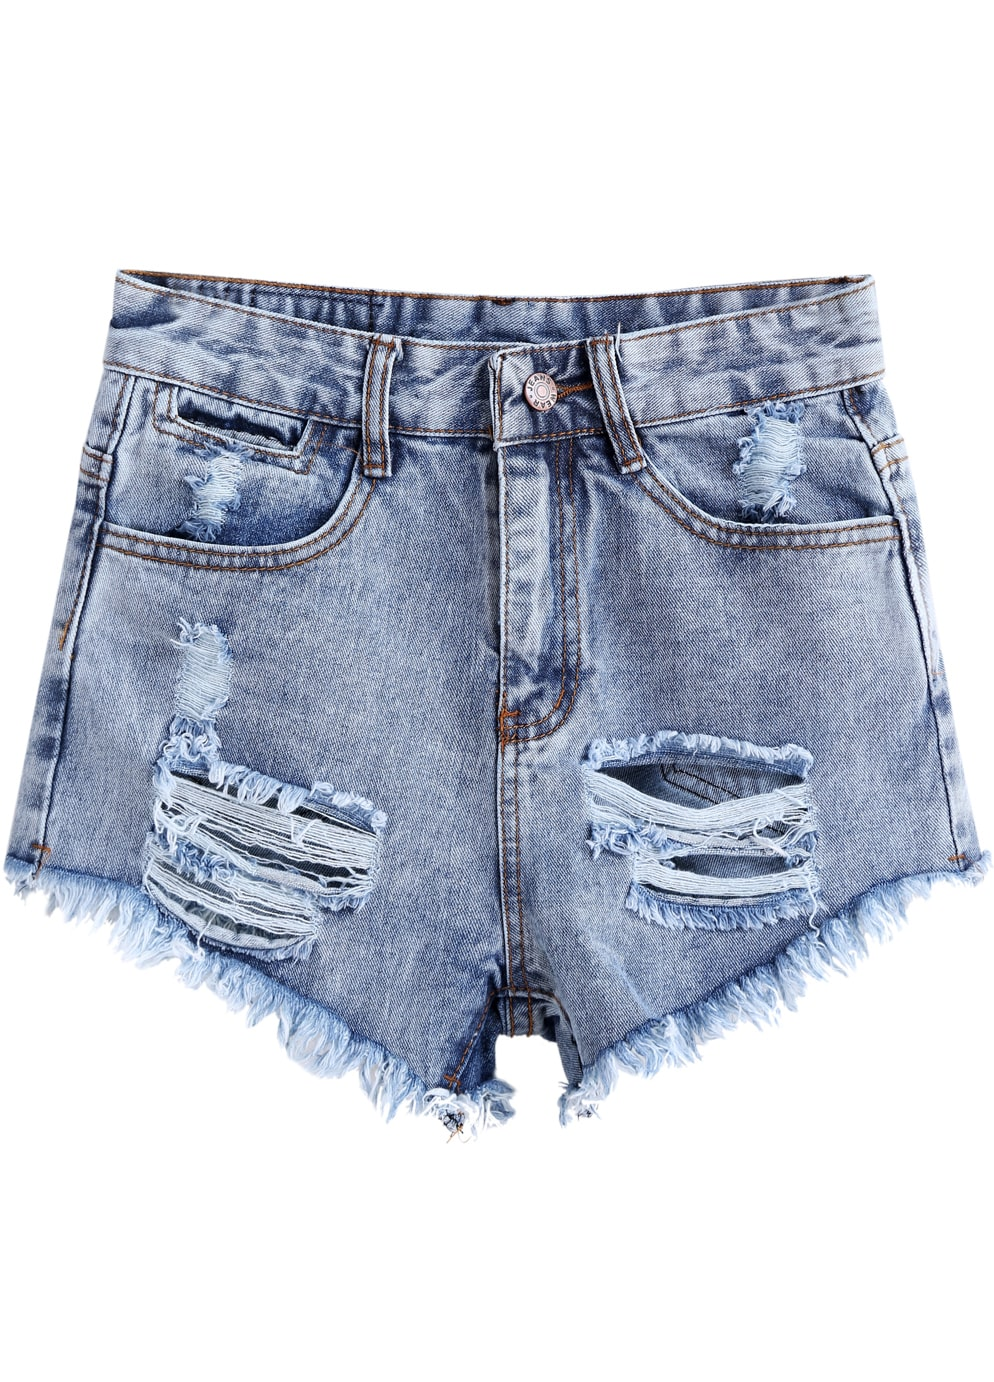 Blue High Waist Ripped Denim Shorts -SheIn(Sheinside)